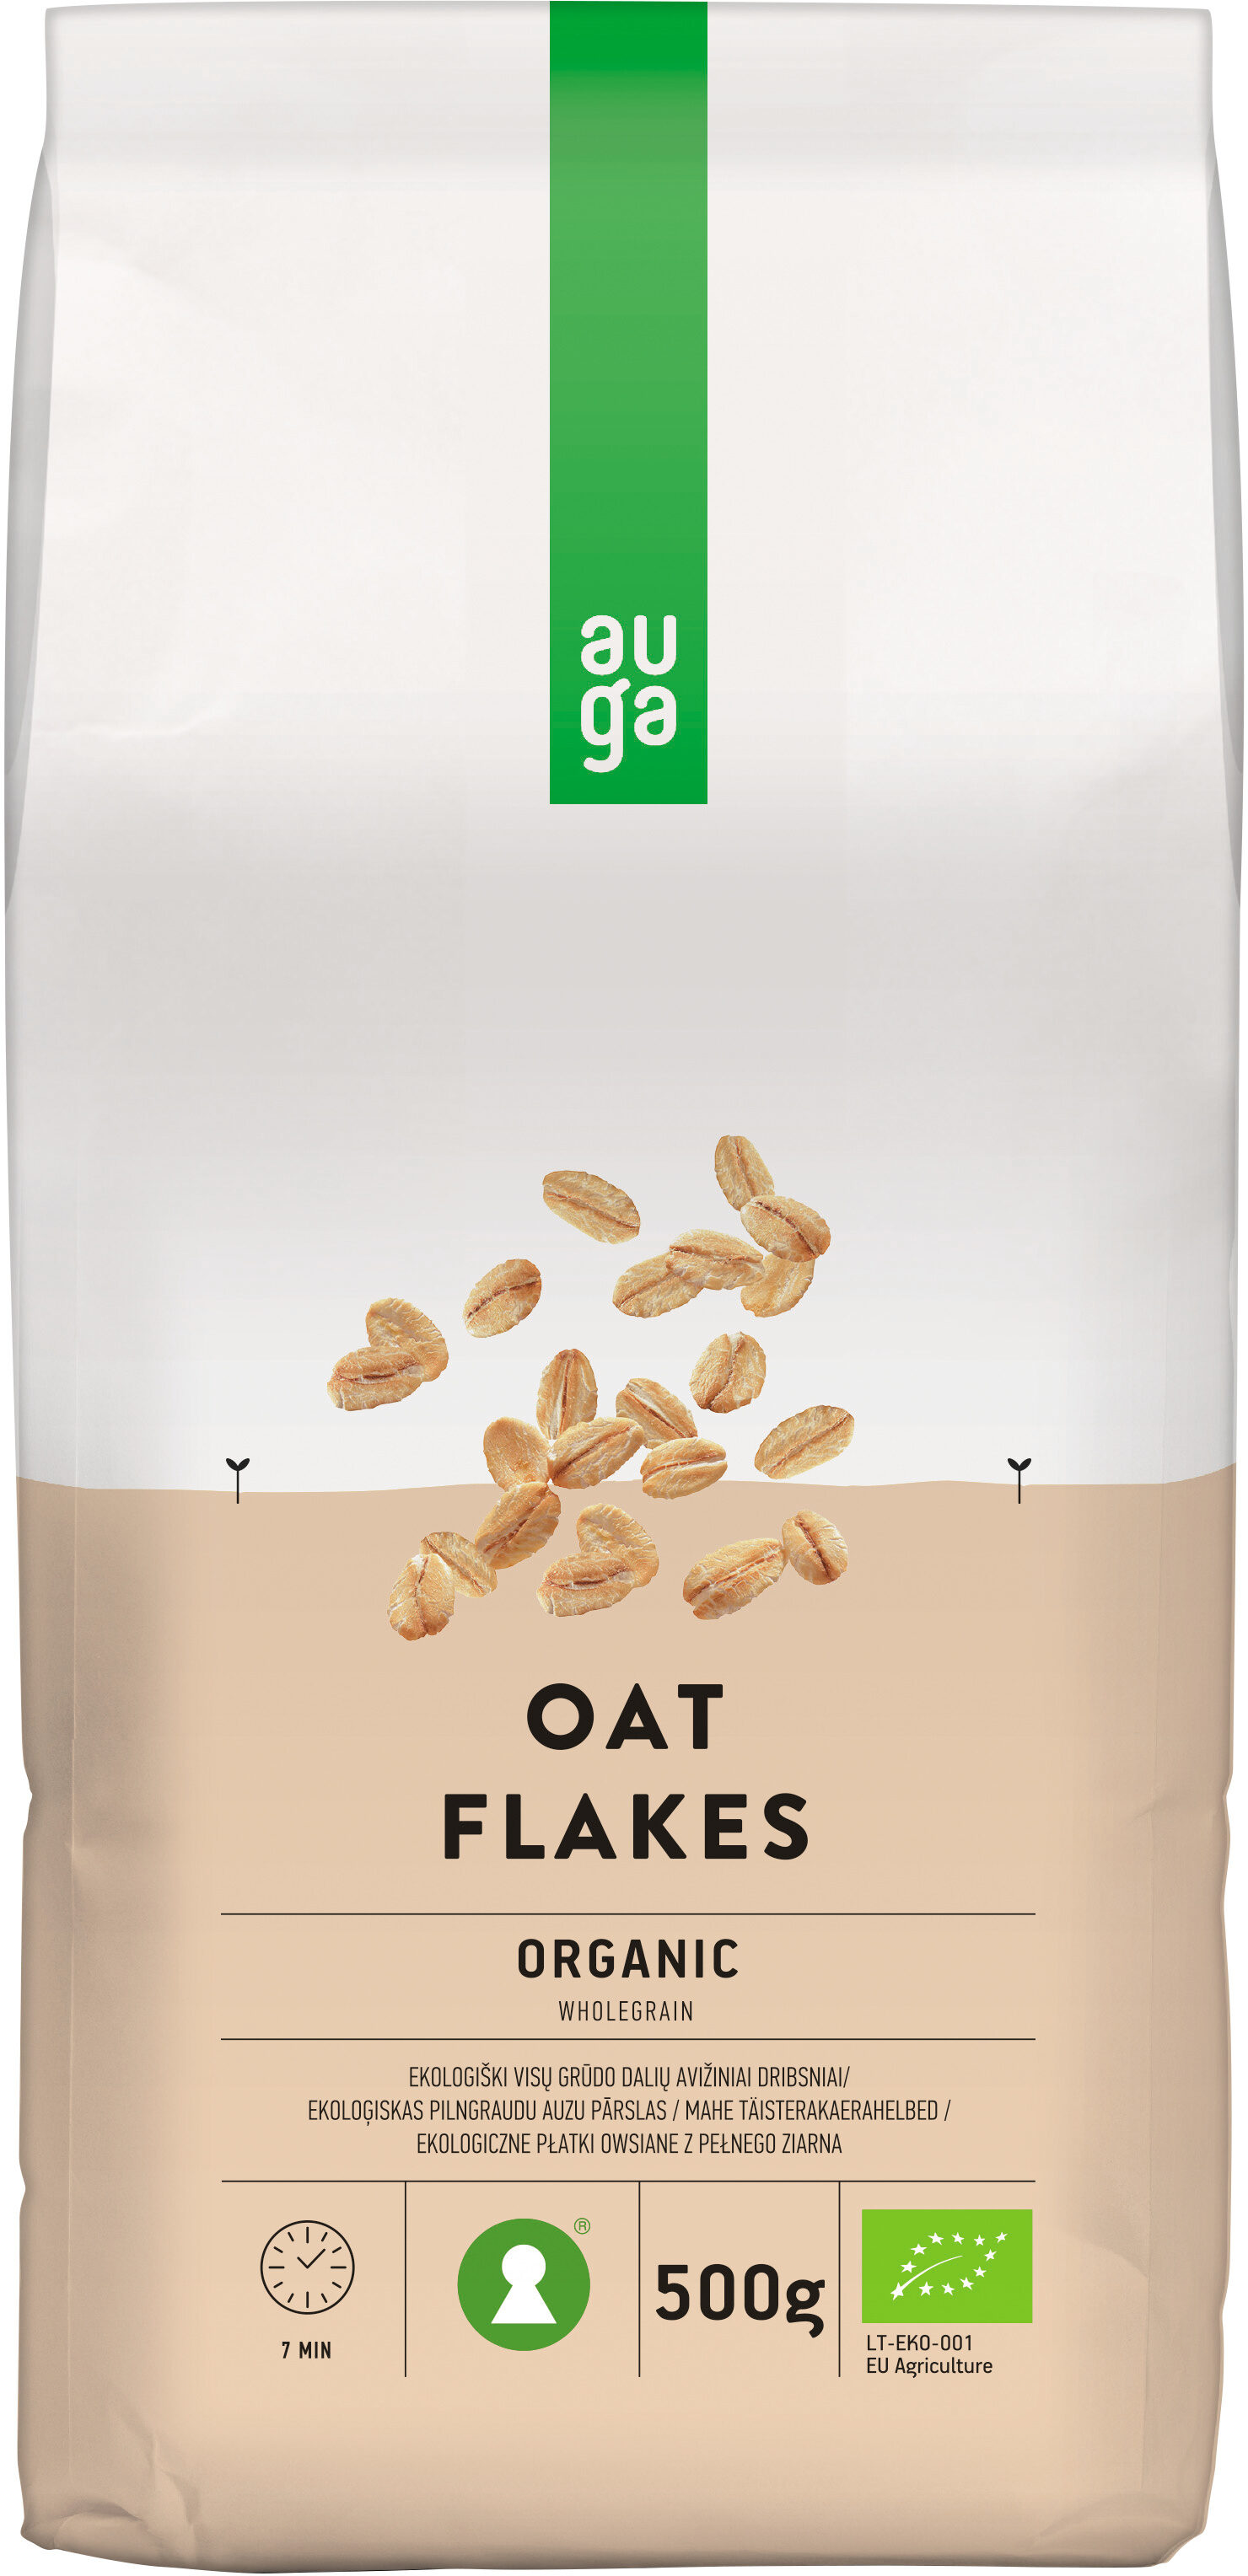 Oat Flakes - Product - en